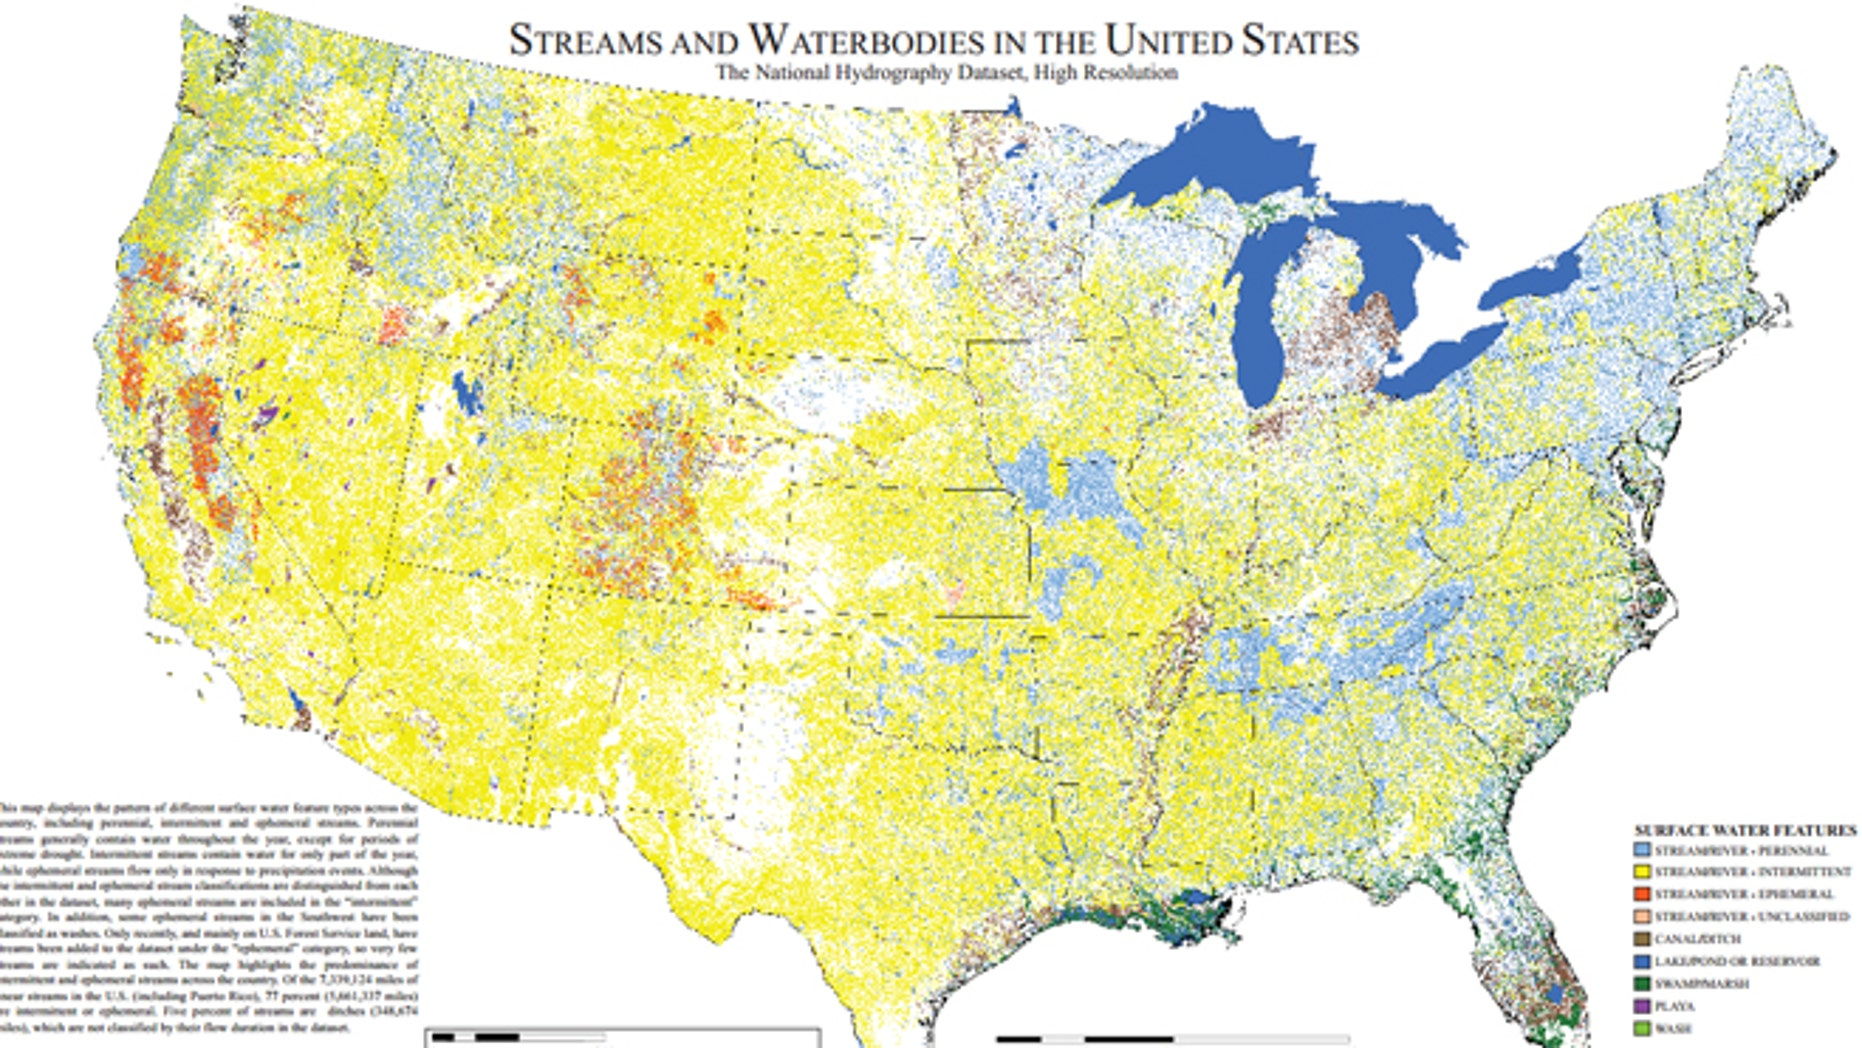 Blueprint for water \'control\'? Pol says EPA made secret maps ...